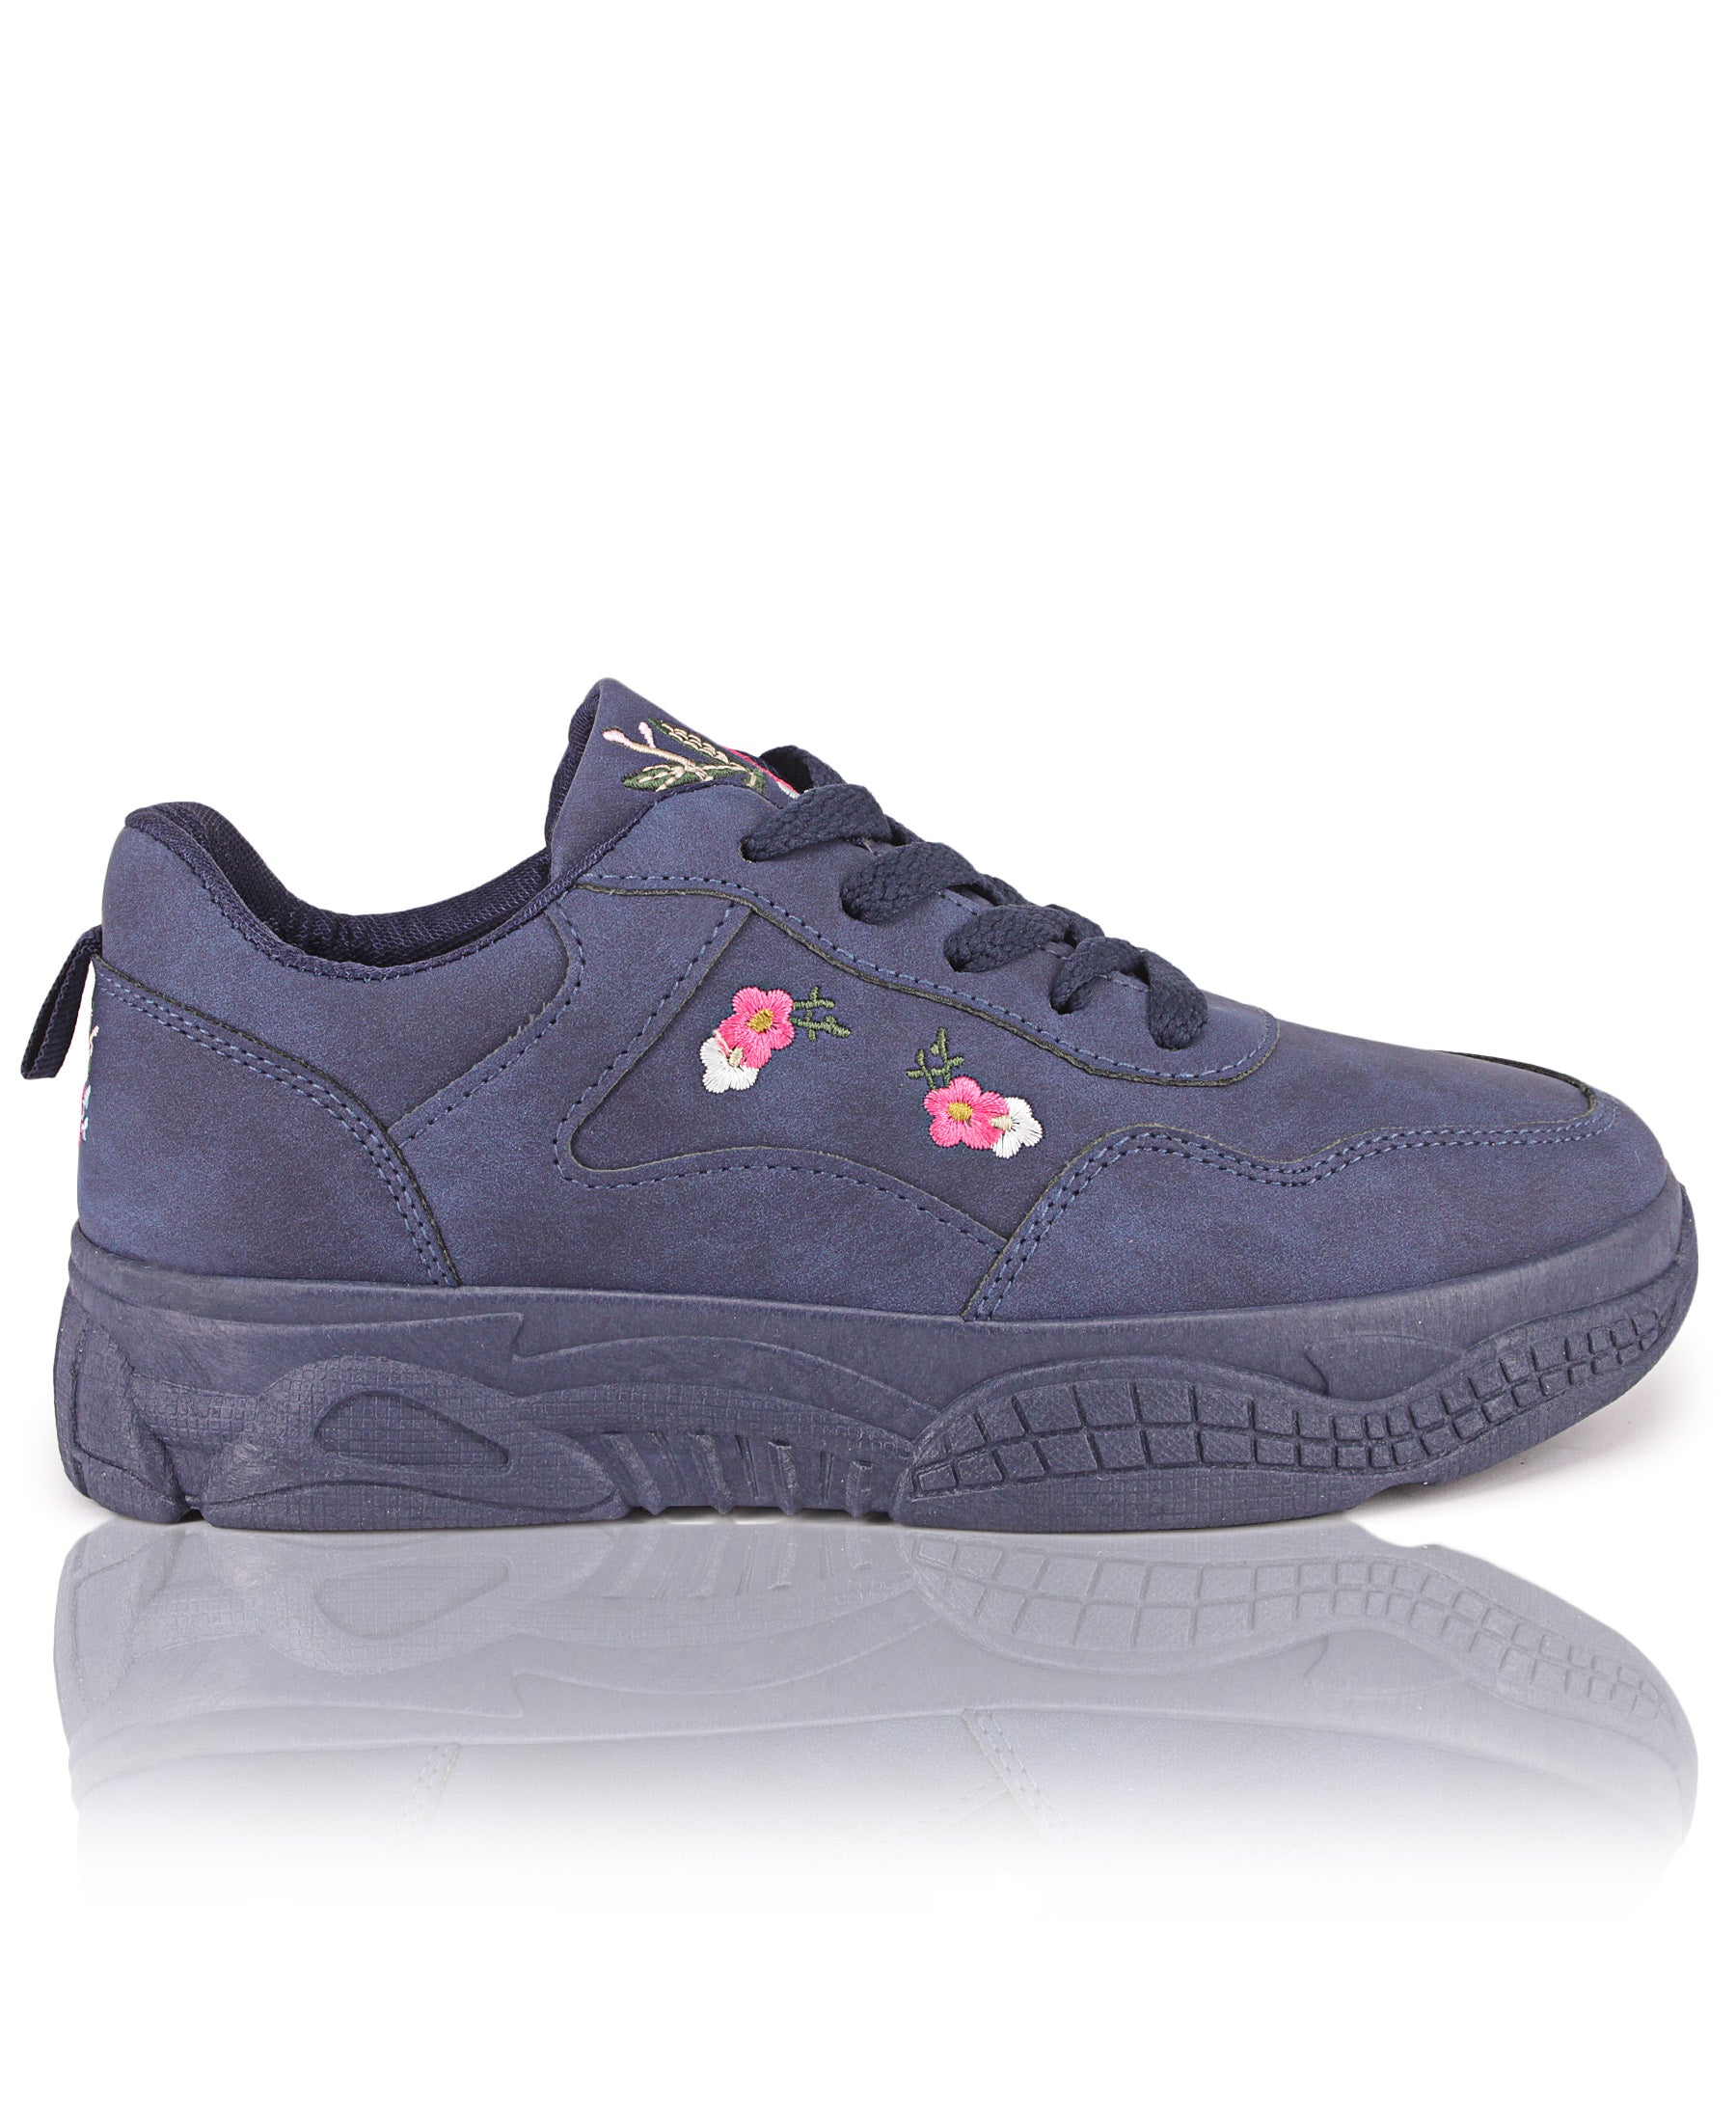 Ladies' Flava Floral - Navy